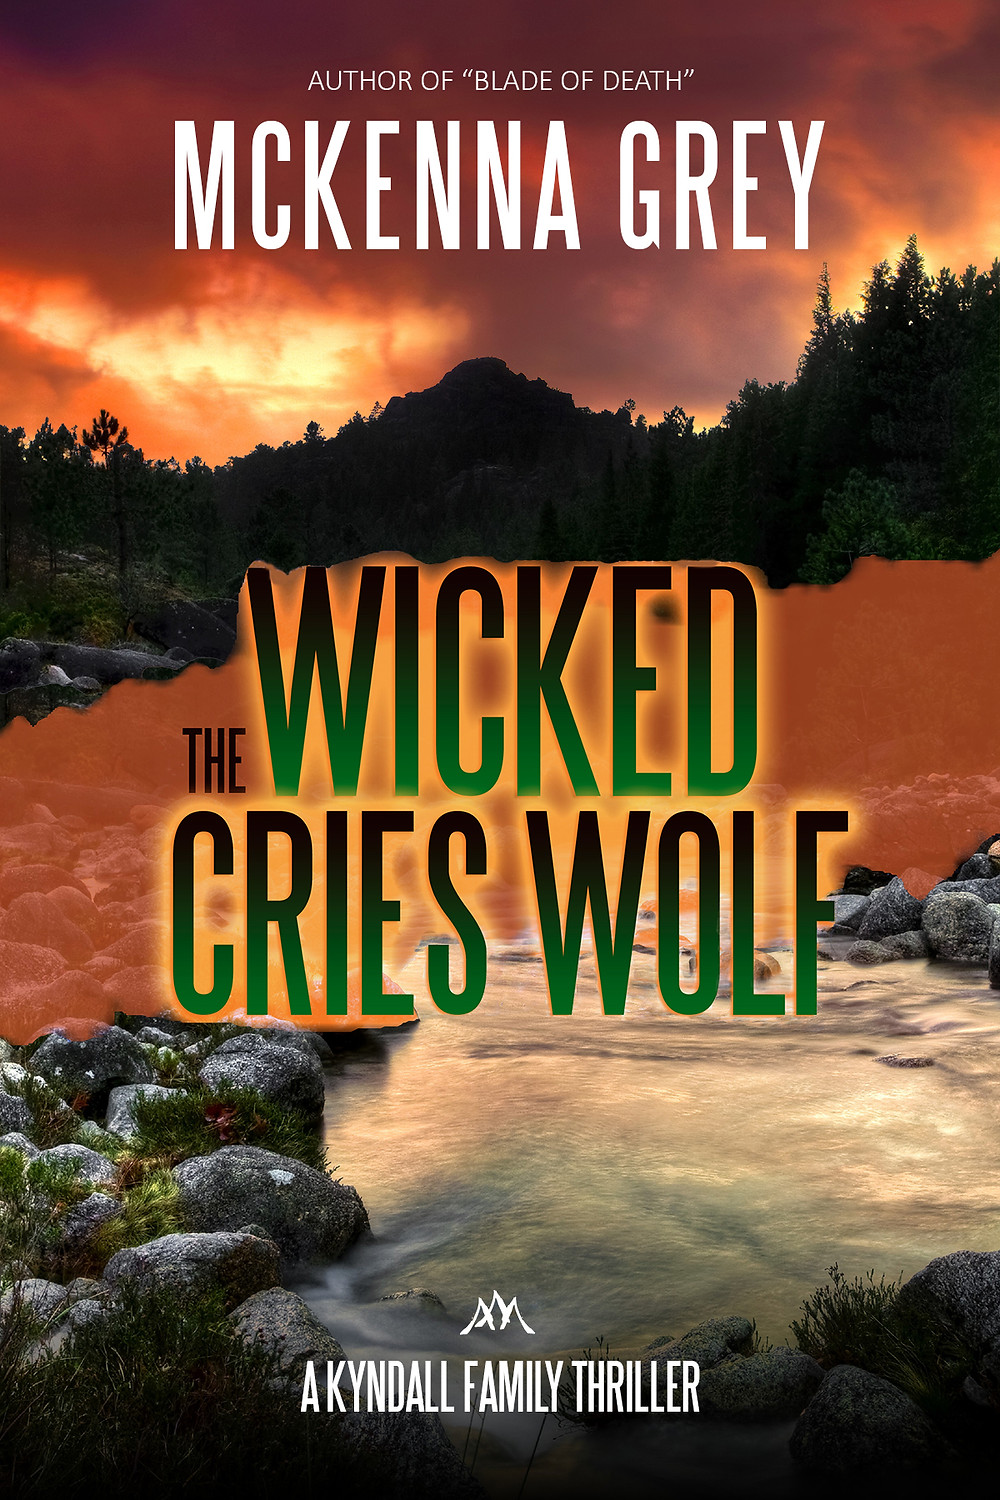 The Wicked Cries Wolf by McKenna Grey - a Kyndall Family Thriller